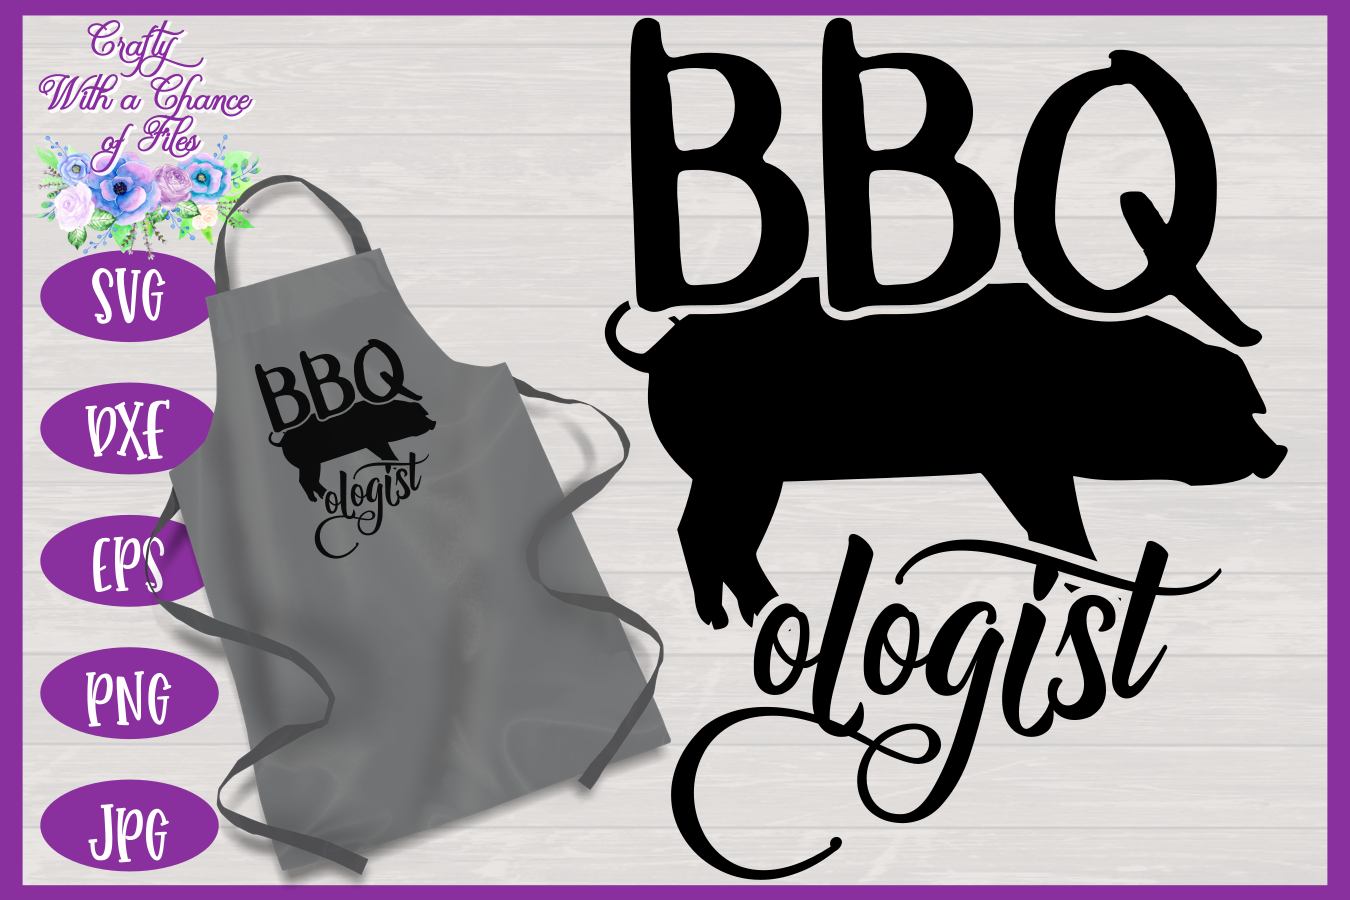 BBQ Grill Apron Bundle | Funny SVG Bundle example image 8